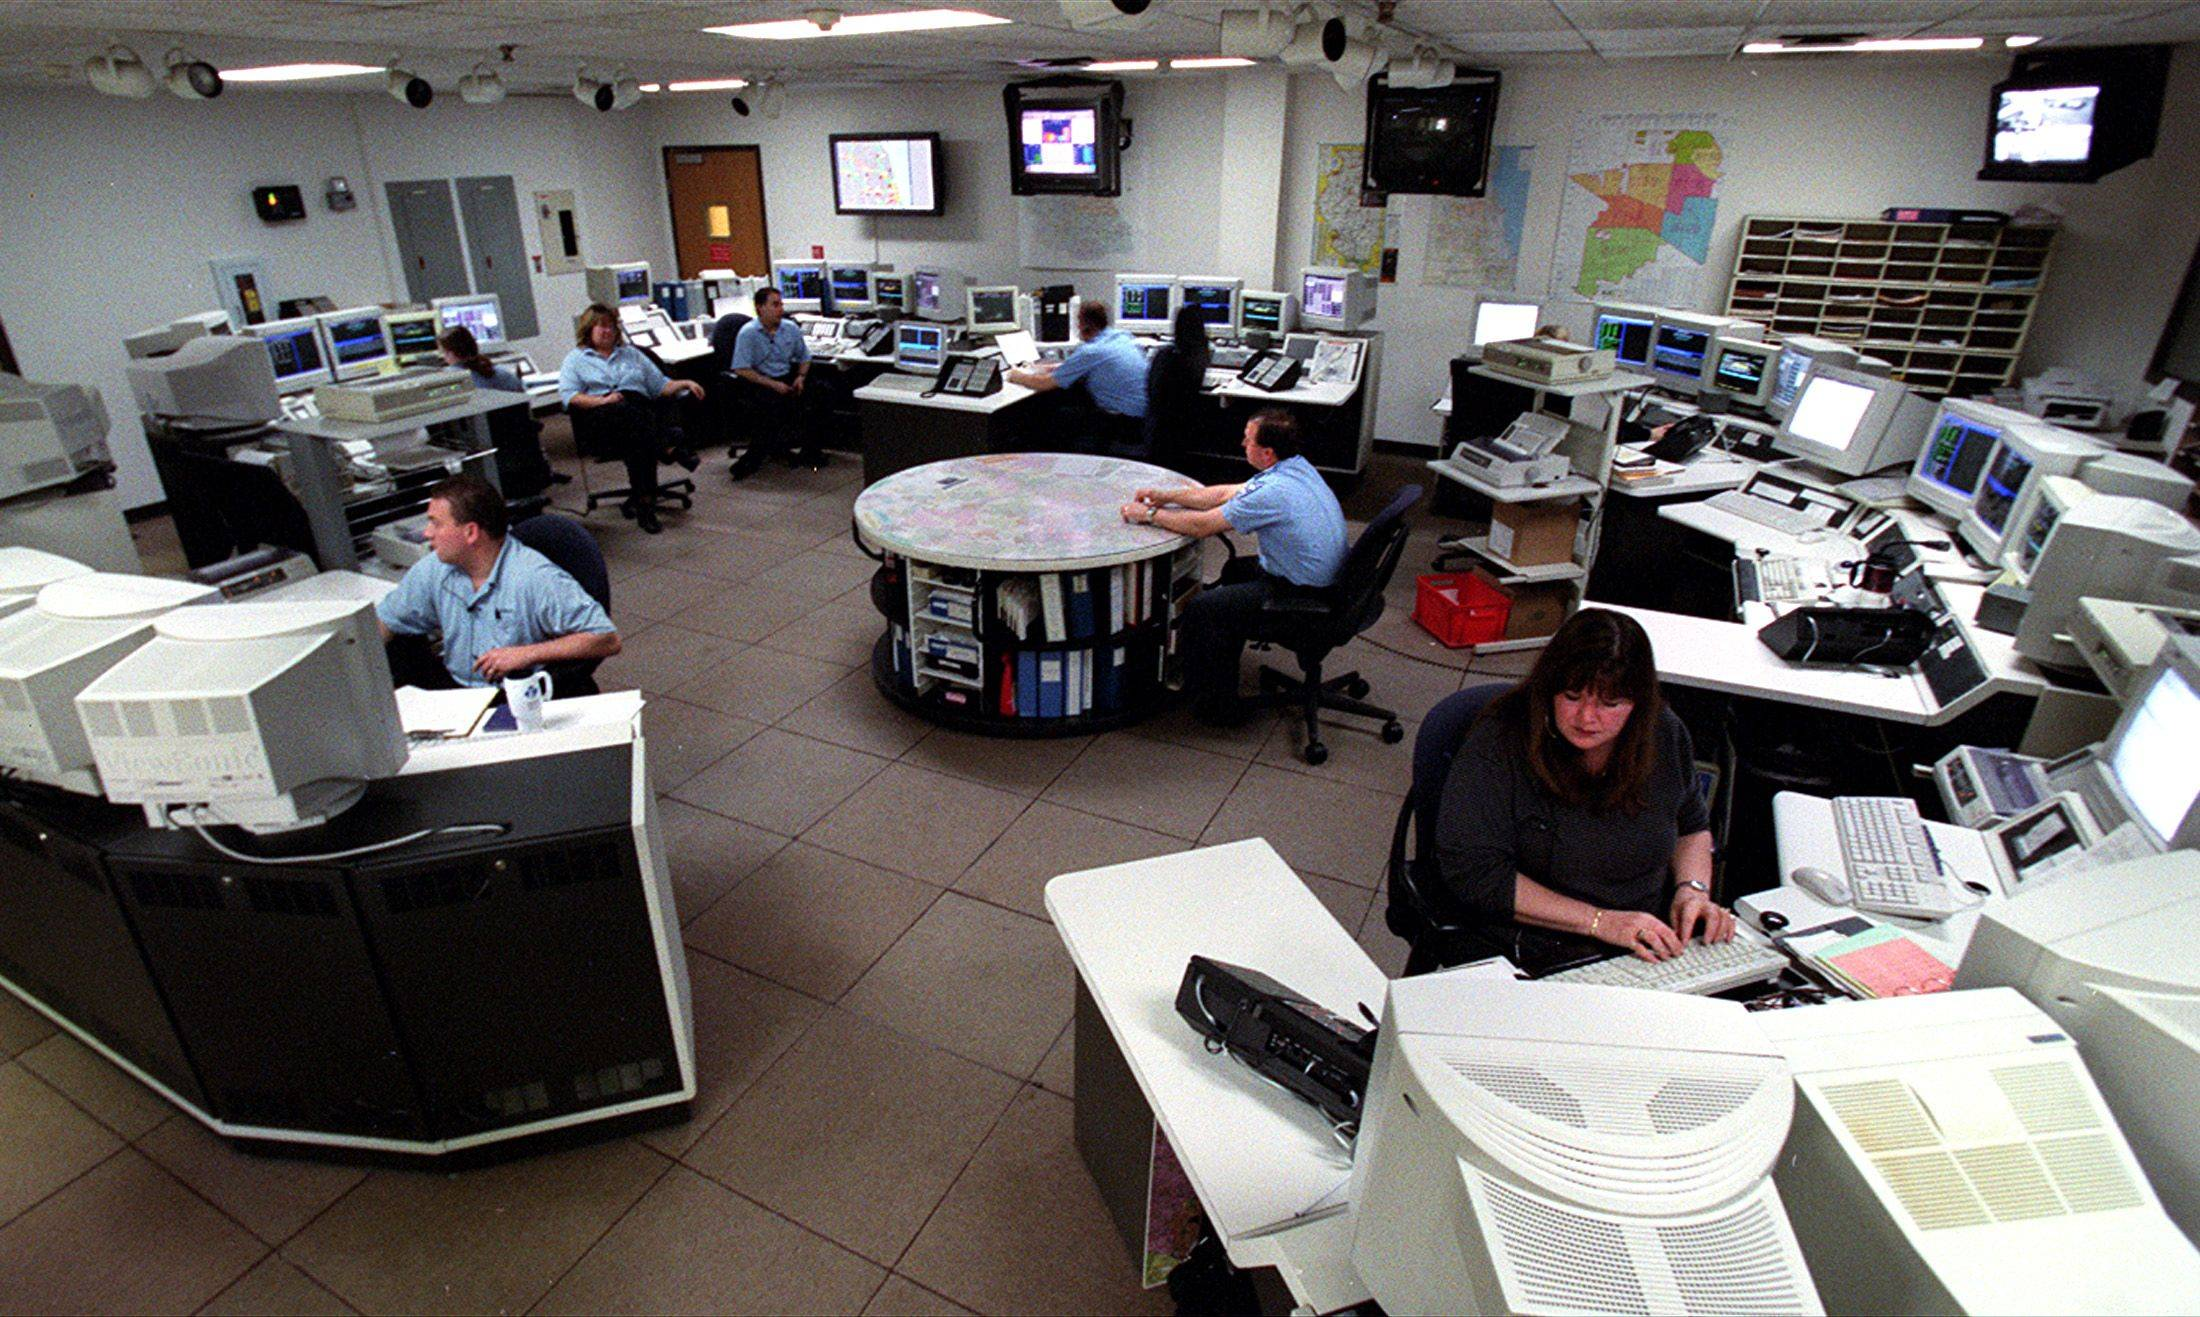 A possible strike by dispatchers at the Northwest Central Dispatch Center in Arlington Heights was averted early this morning when their union reached a tentative labor deal with the center's board.